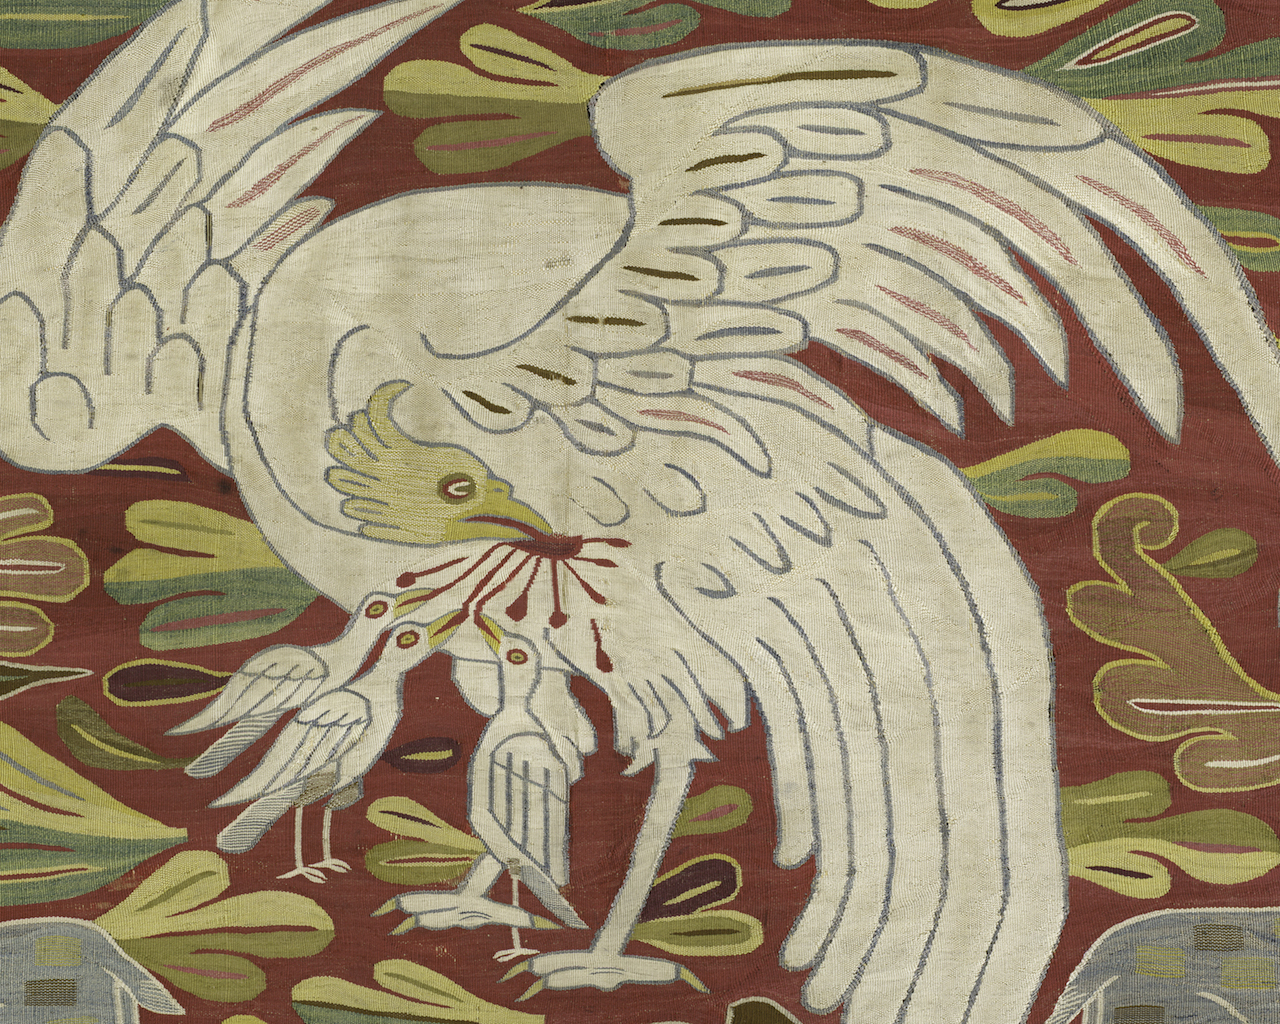 Detail of table covering or wall hanging, Peru, south highlands, 1675–1700, 68.9 x 64.2 in, (acquired by George Hewitt Myers in 1951)